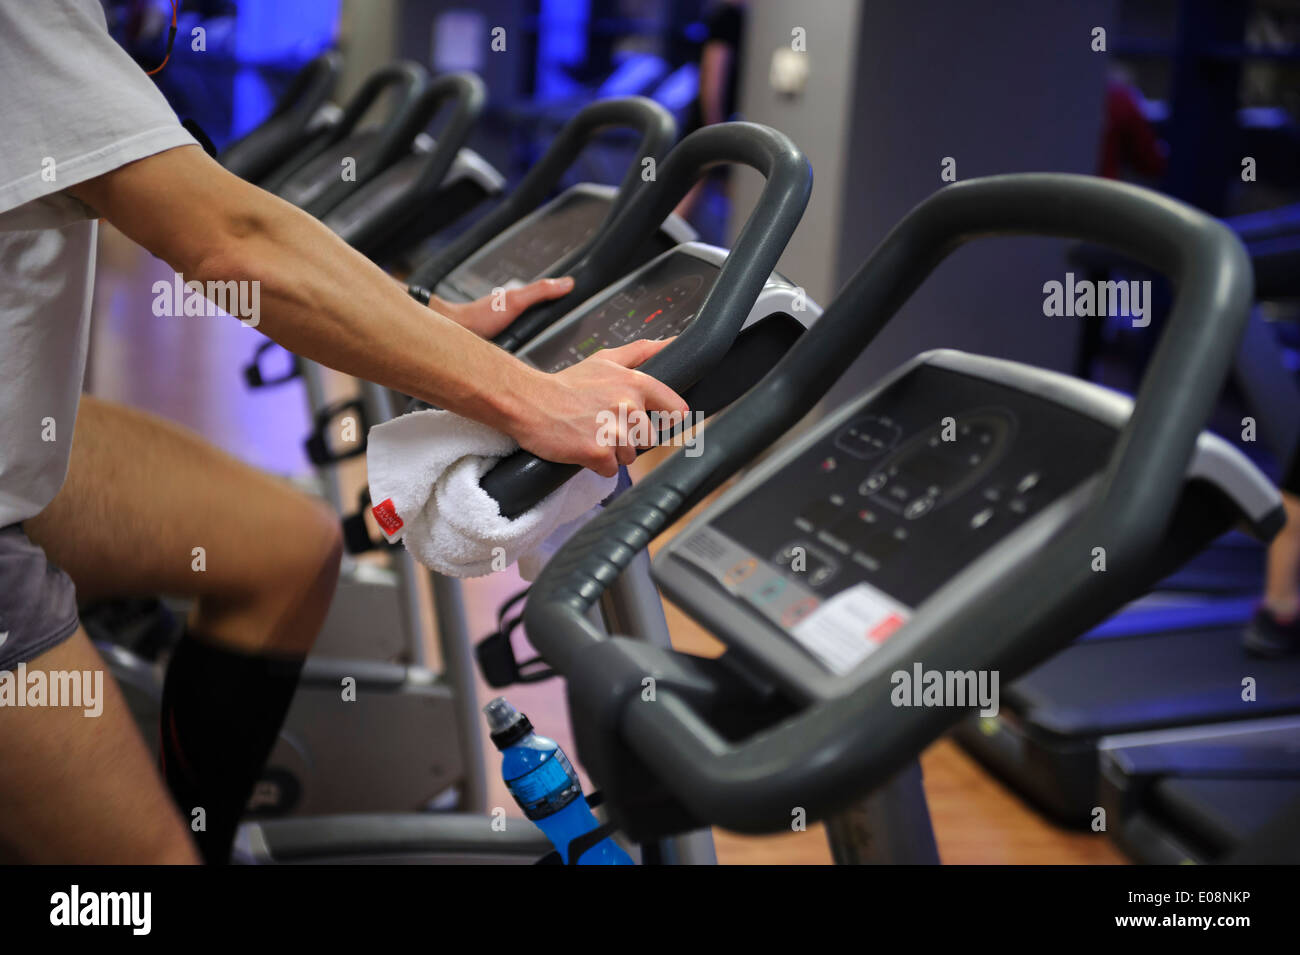 Person working out on exercise bike at the gym - Stock Image